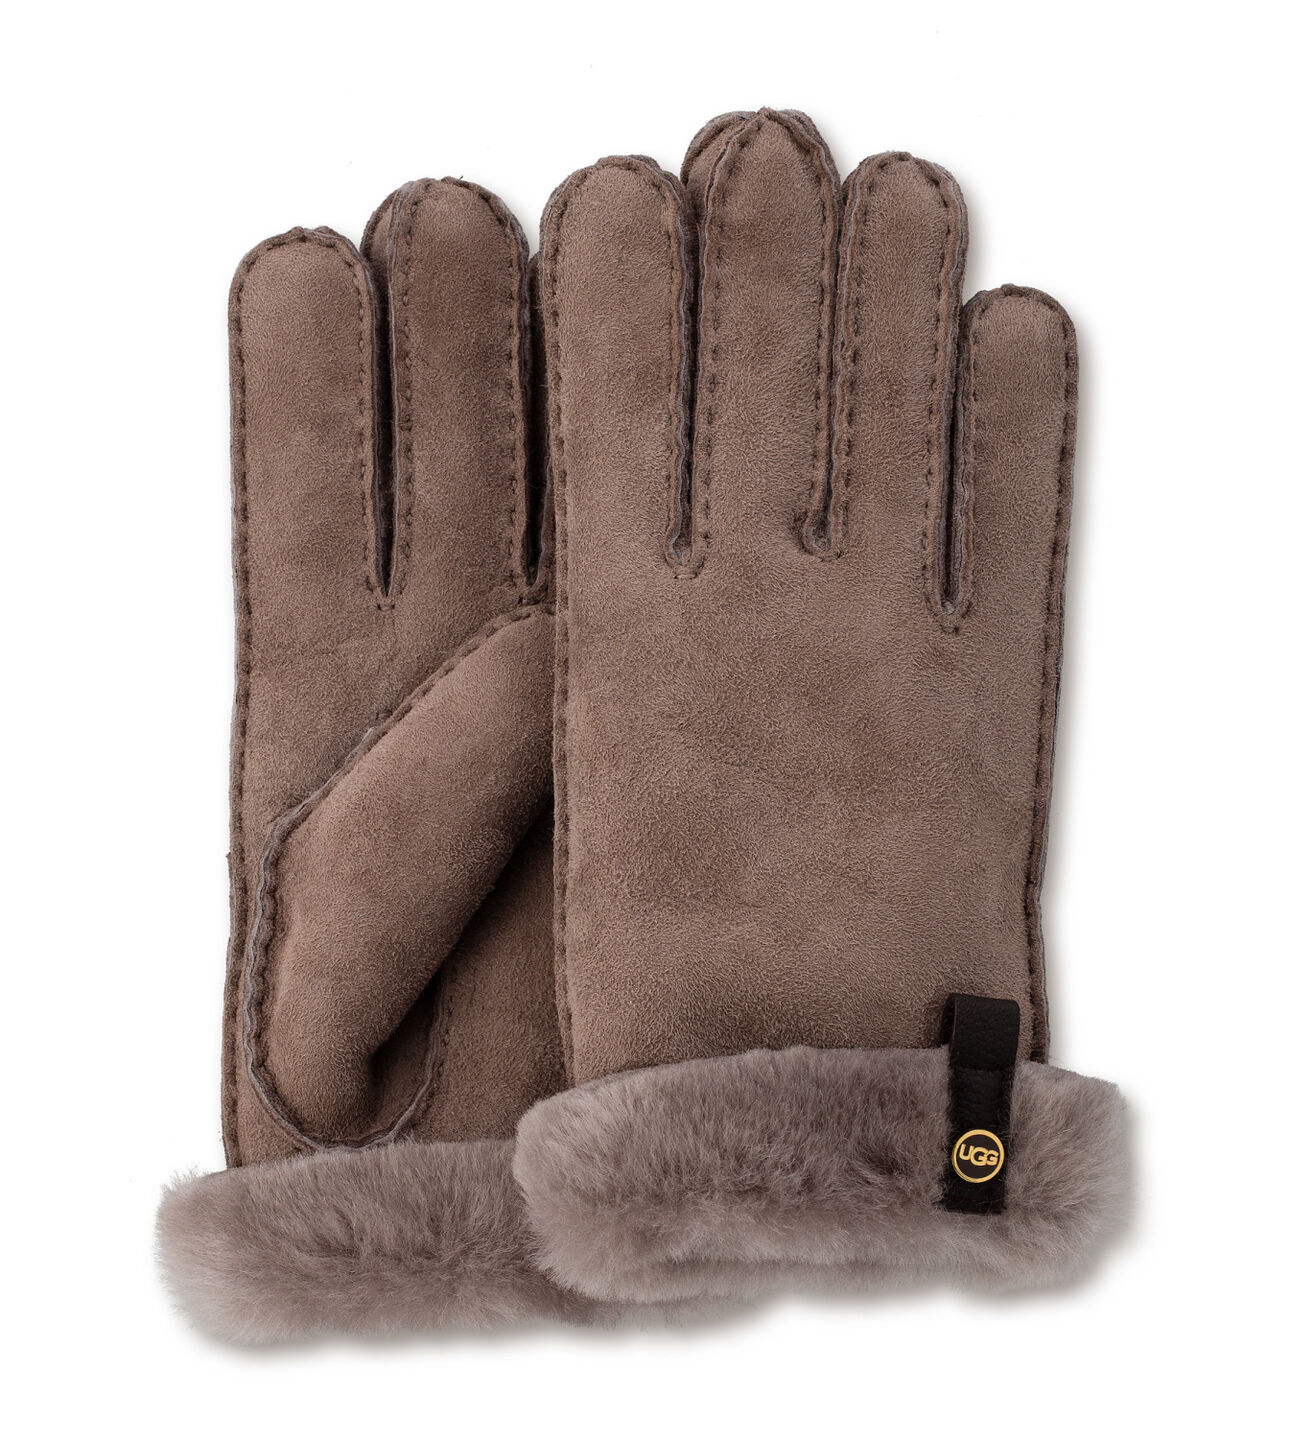 Red leather driving gloves mens - Red Leather Driving Gloves Mens 55